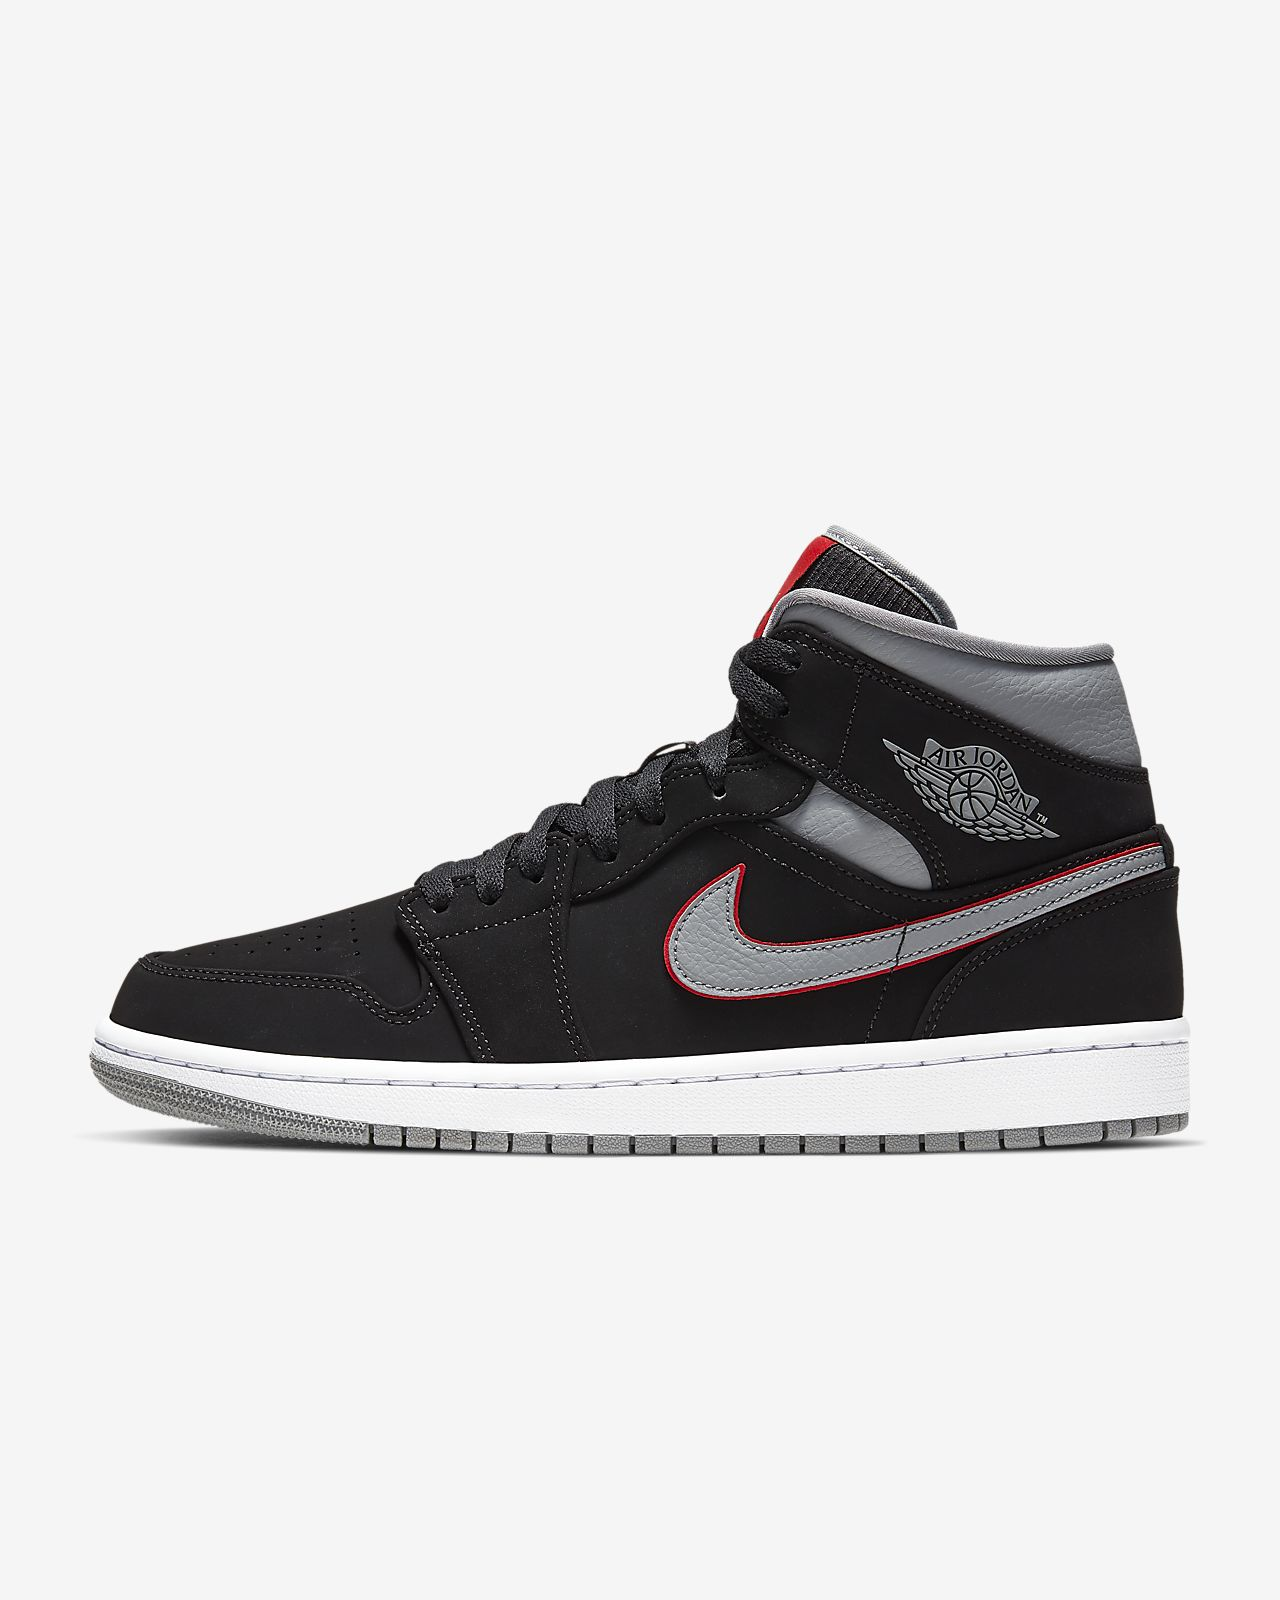 4d142e473a0a4f Air Jordan 1 Mid Men s Shoe. Nike.com AU